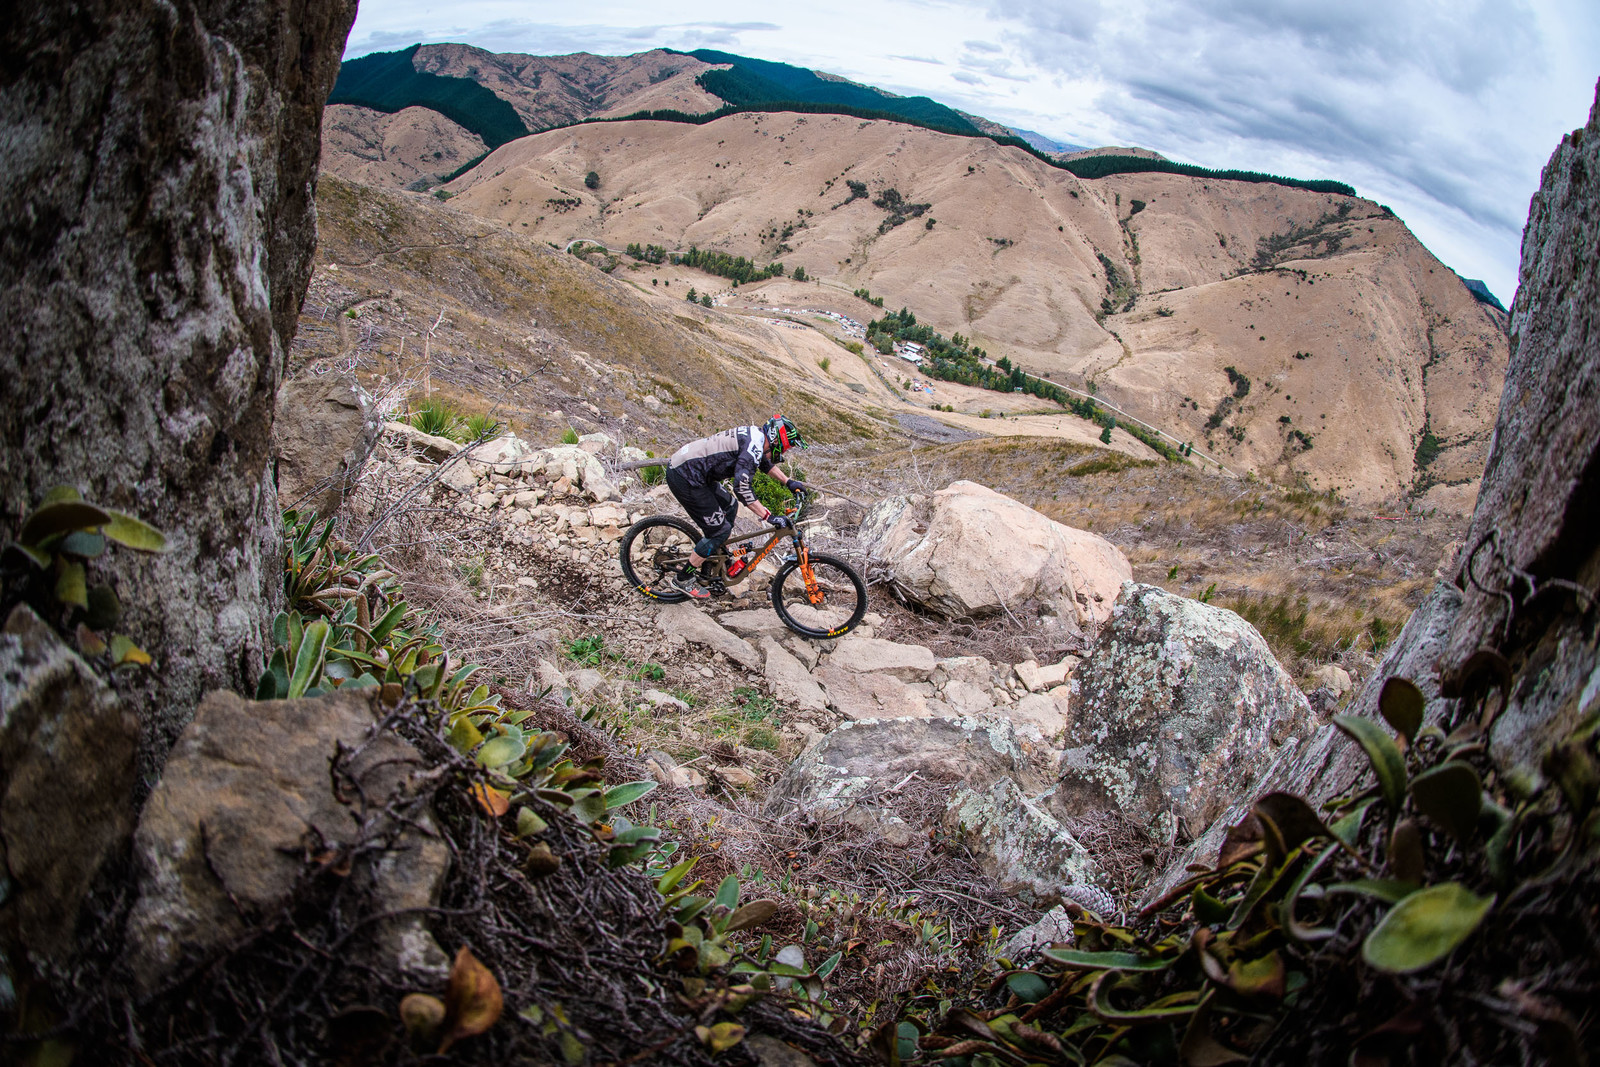 NZenduro19 day 3 DShaw-7896 - 2019 NZ Enduro Day 3 Photo Gallery - Mountain Biking Pictures - Vital MTB